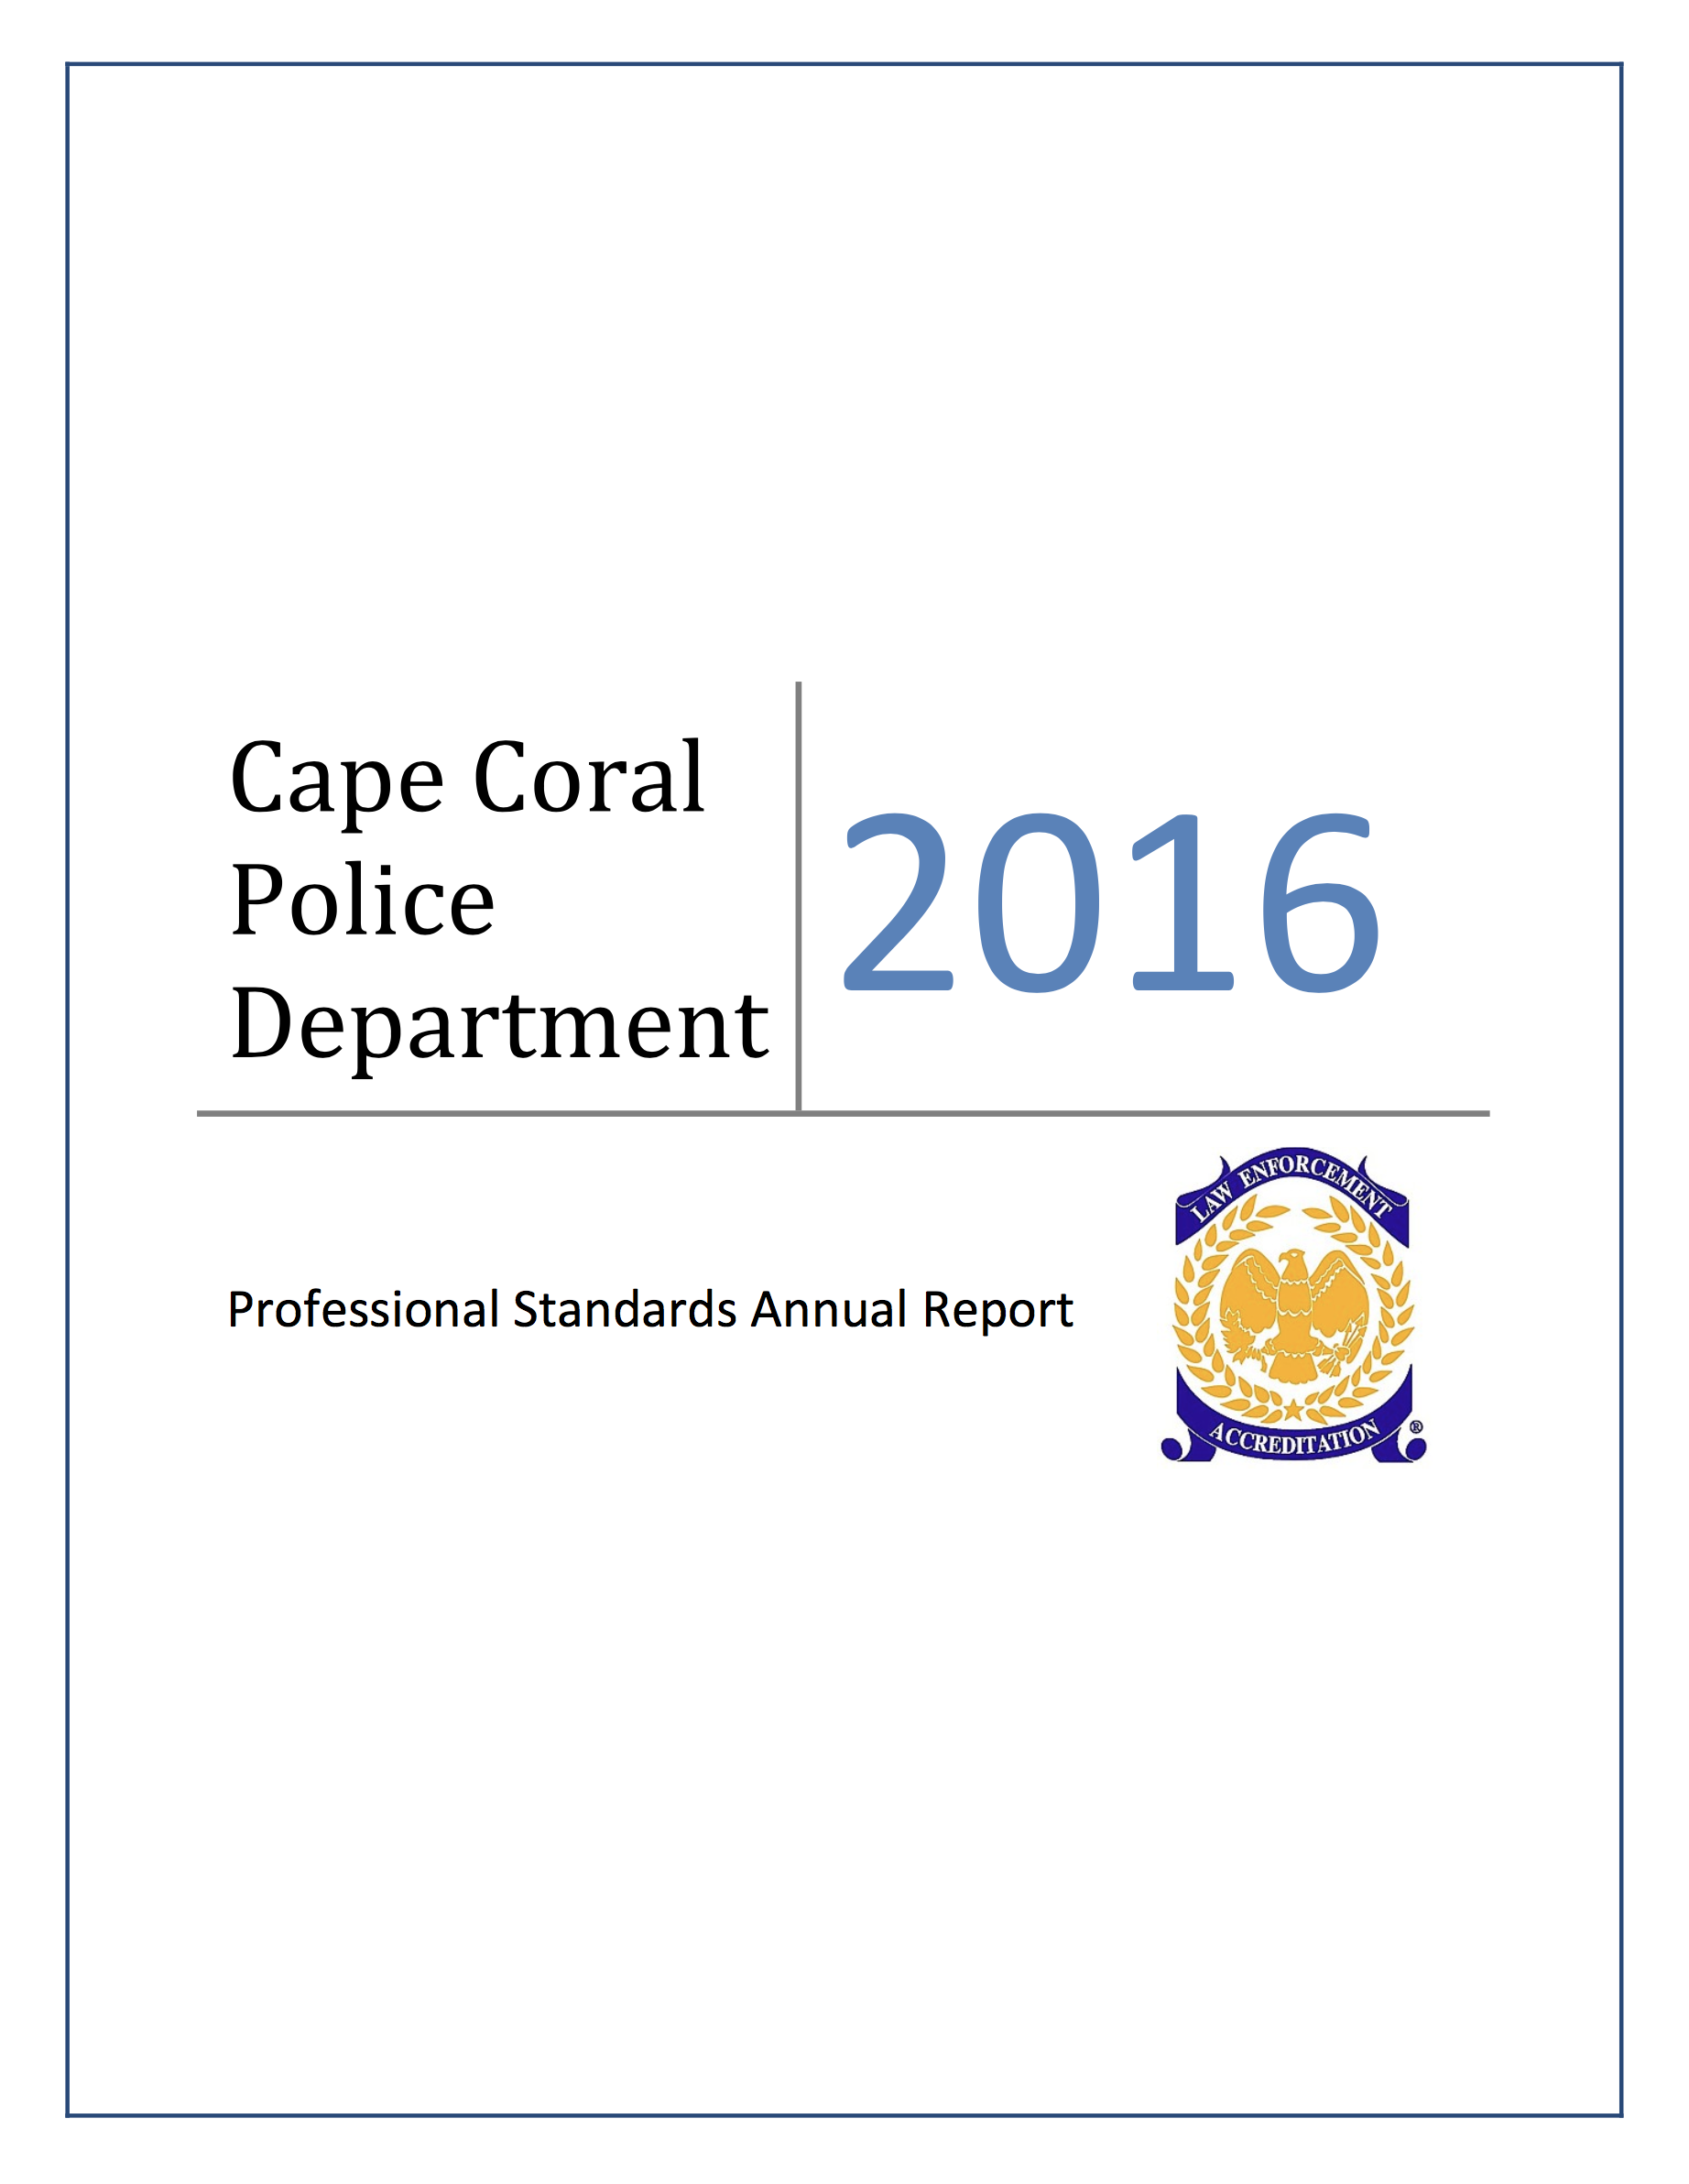 2016 Annual IA Report - The Professional Standards Bureau publishes an annual overview and statistical analysis of Internal Affairs.